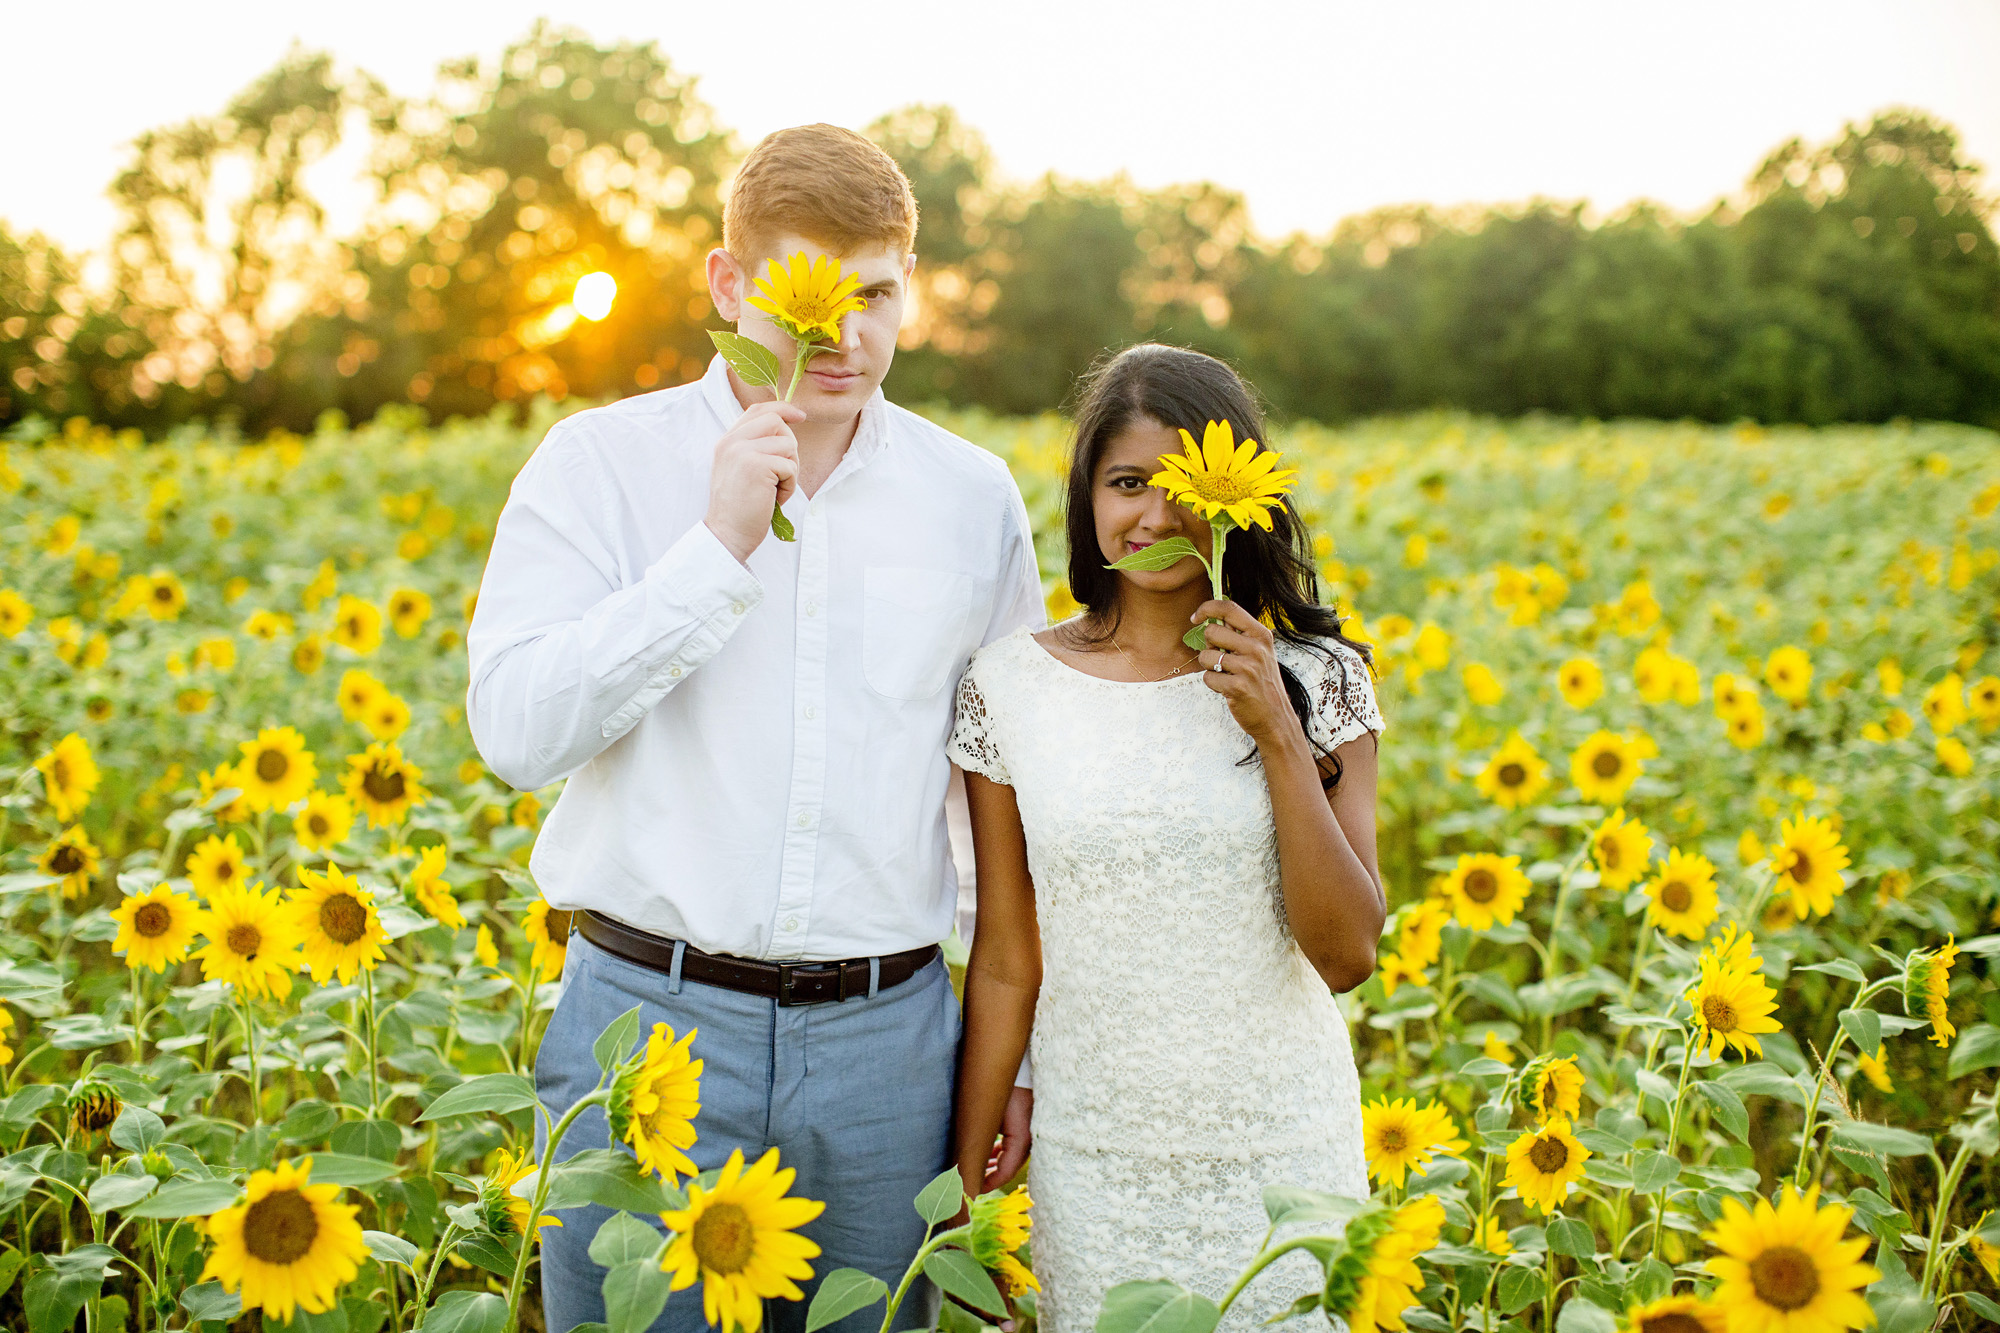 Seriously_Sabrina_Photography_Lexington_Midway_Kentucky_Engagement_Merefield_Sunflowers_Naz_and_Drew4.jpg